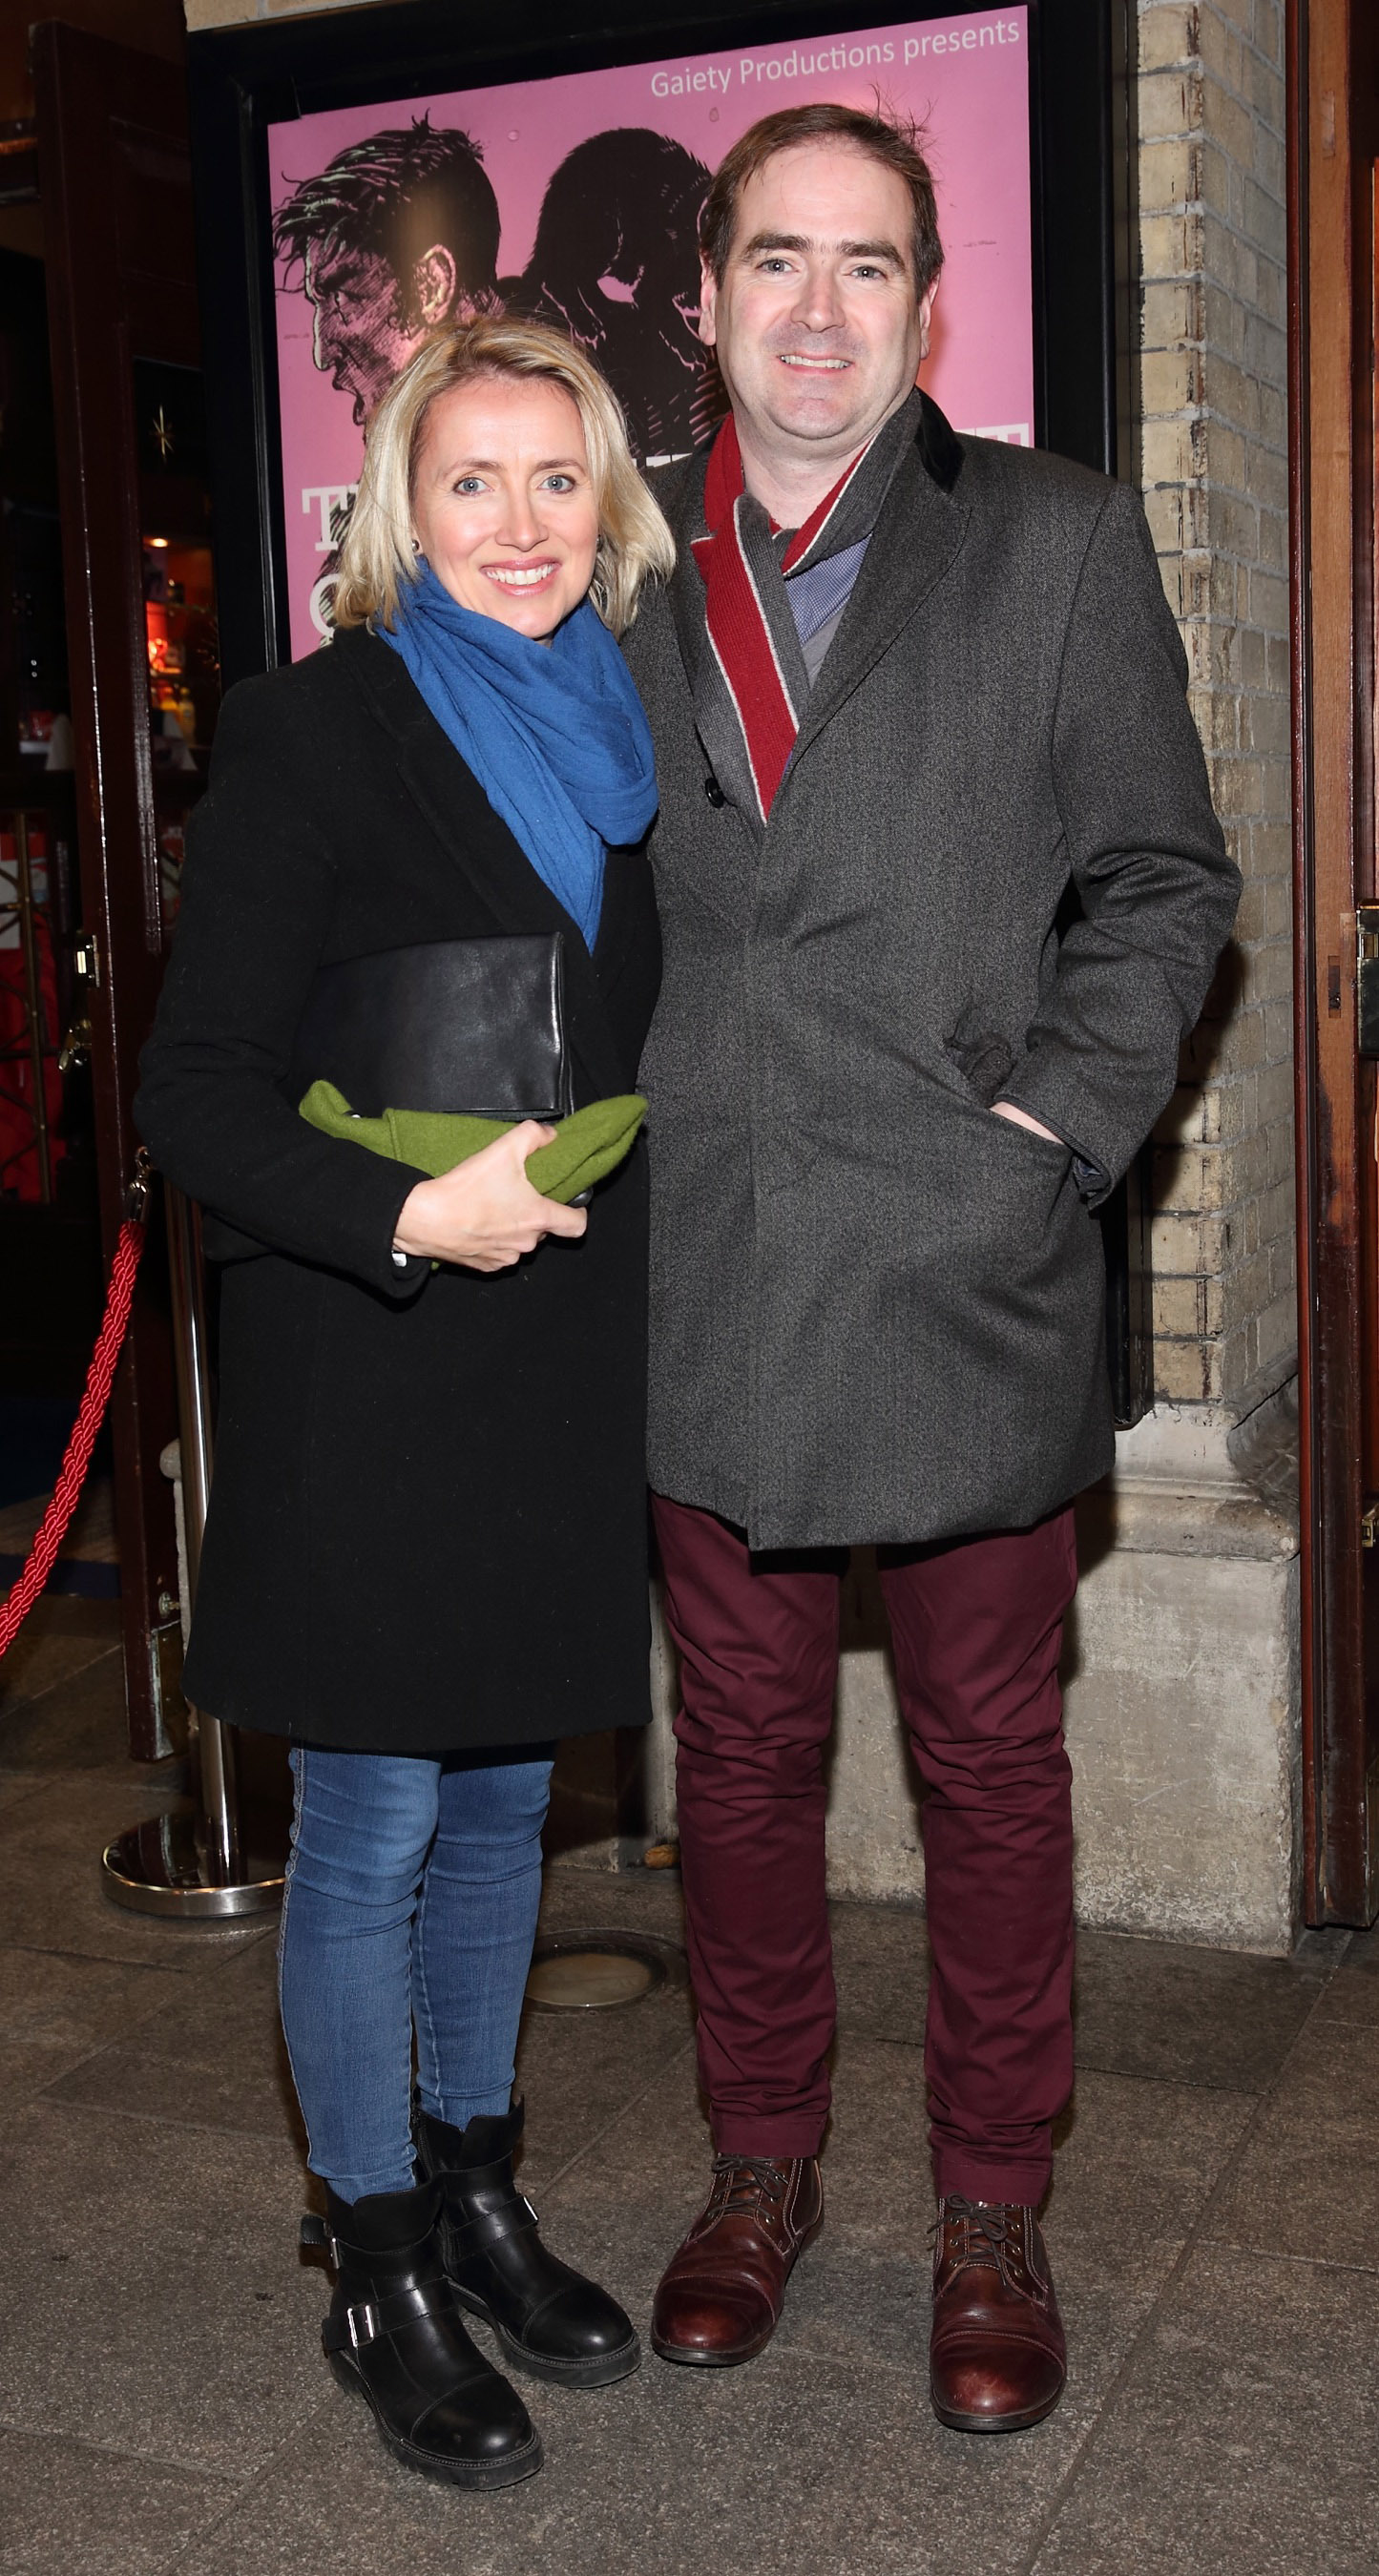 Suzanne Leyden and Neil Leyden pictured at the opening of the Gaiety Theatre's major new production of Martin McDonagh's 'The Lieutenant of Inishmore', which will run at the Gaiety Theatre until 14th March.